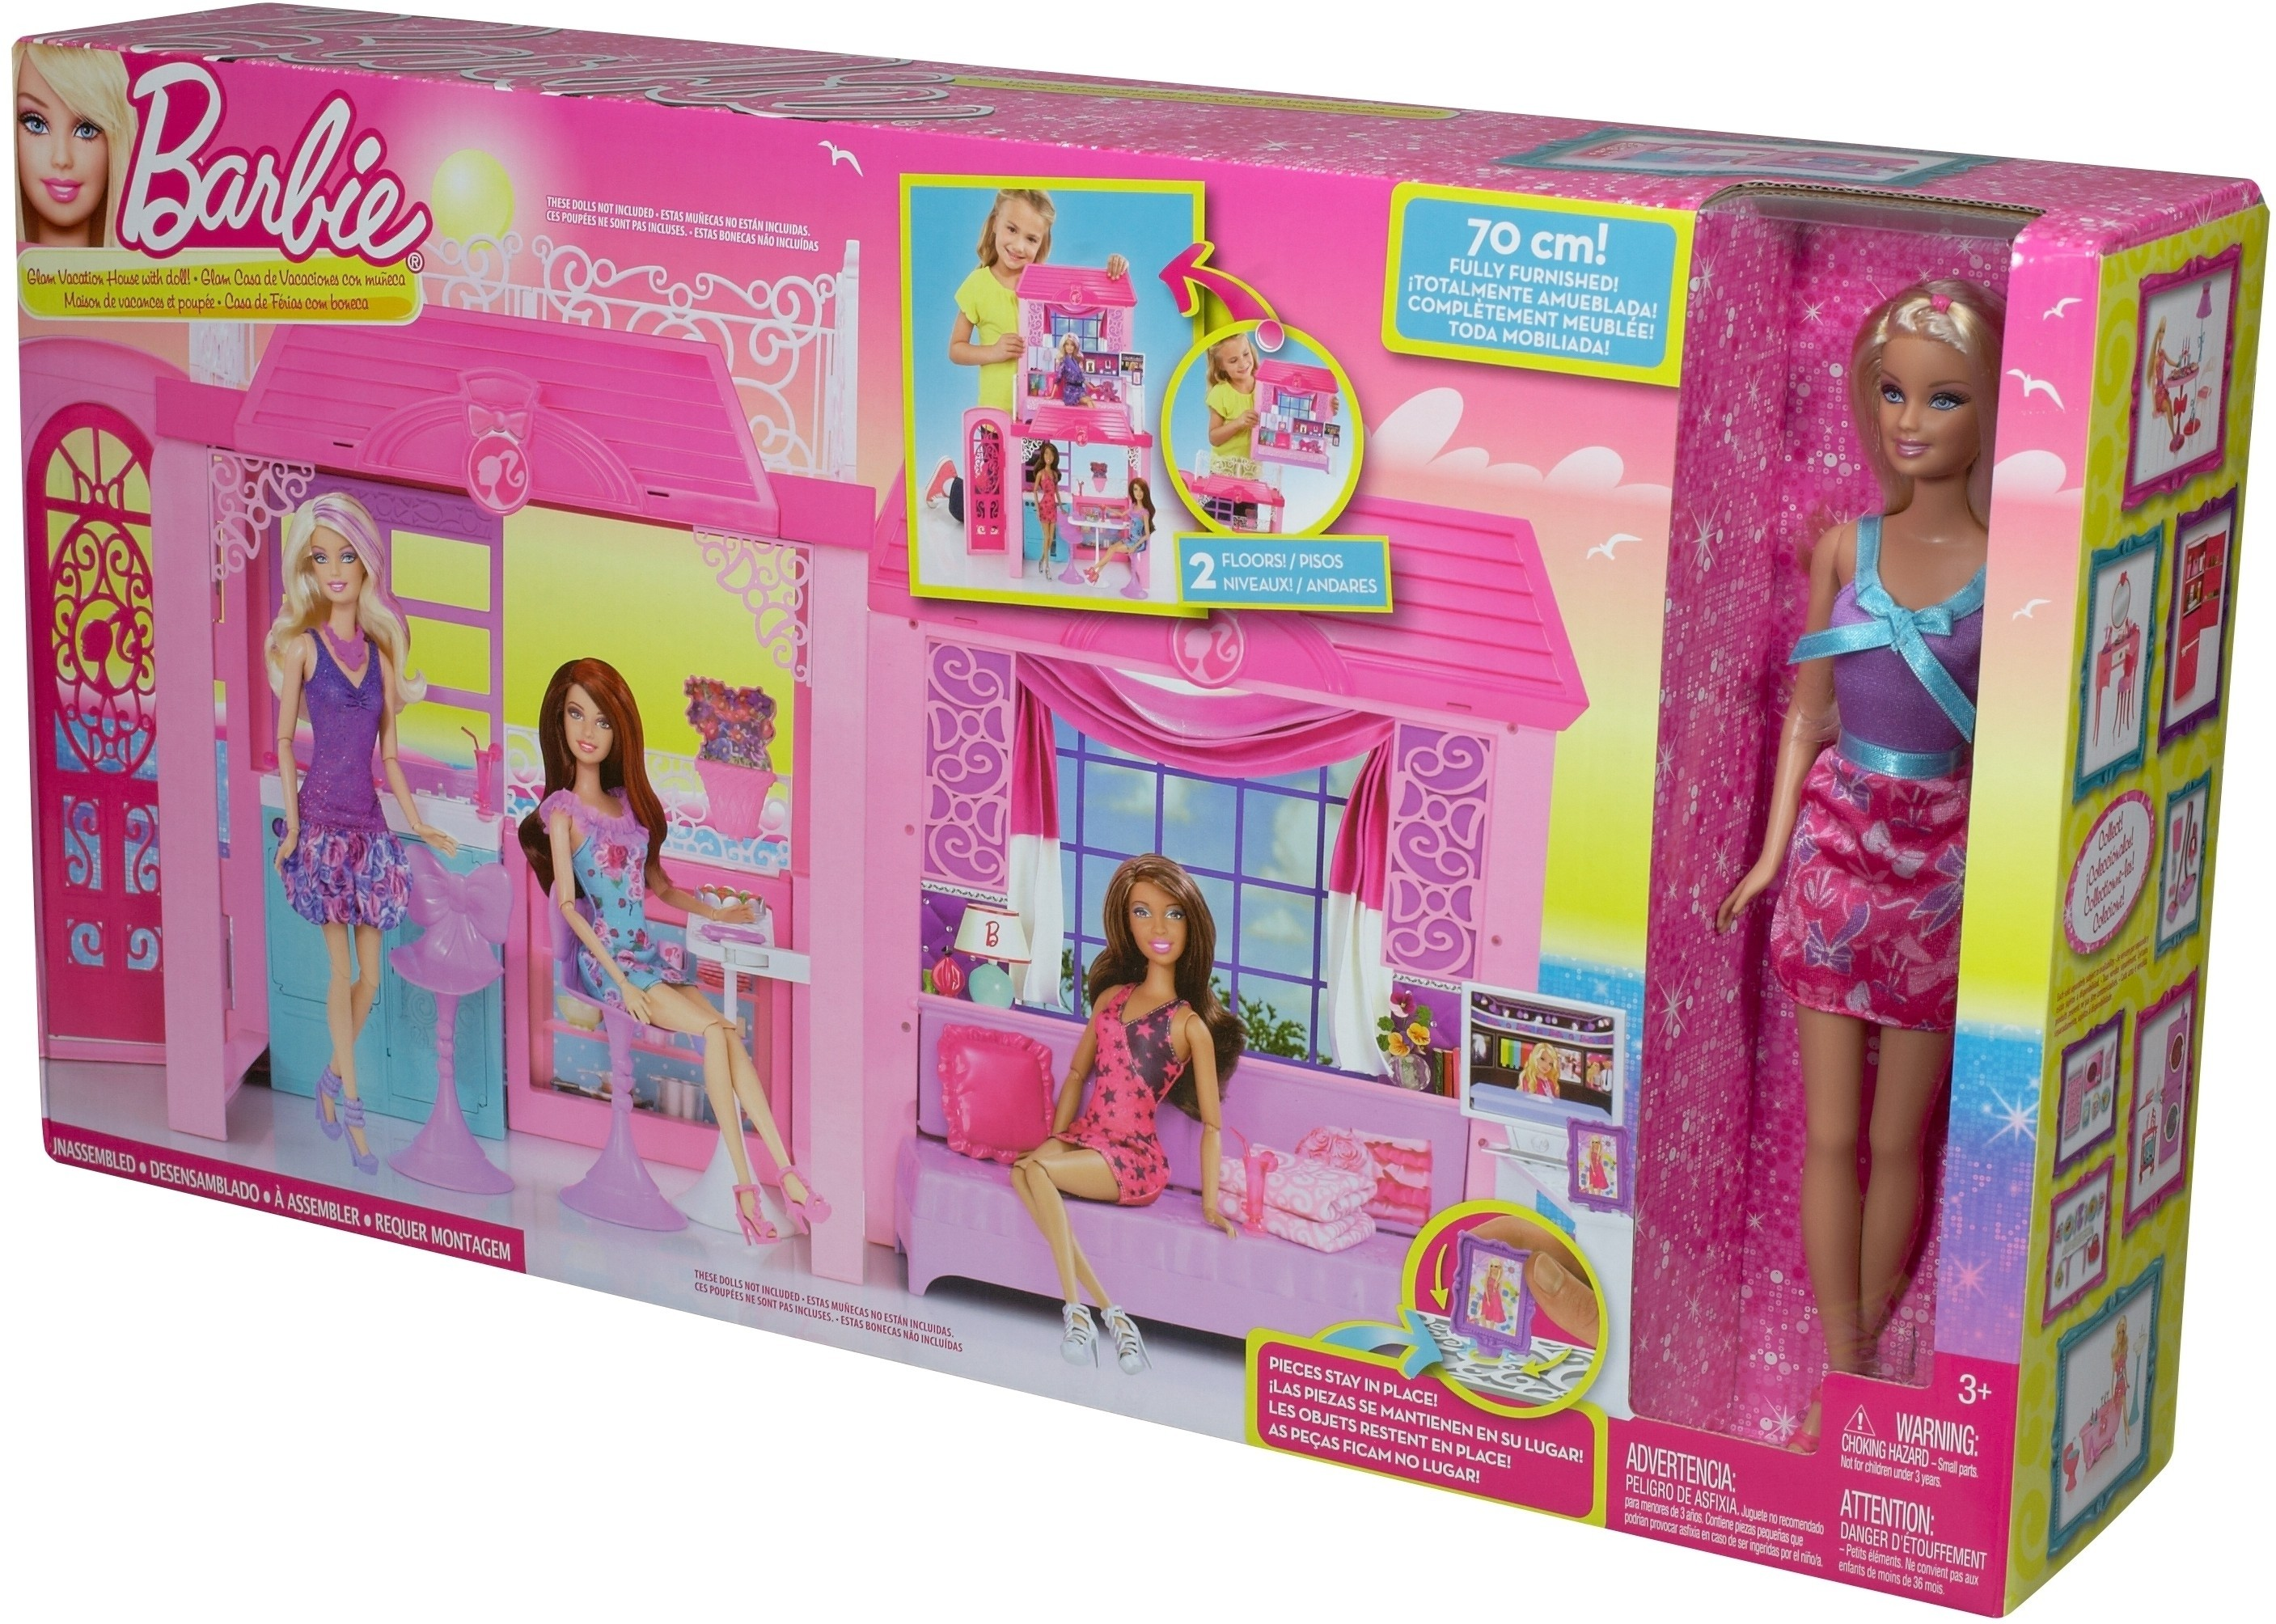 Barbie Glam Vacation House Glam Vacation House Shop For Barbie Products In India Toys For 3